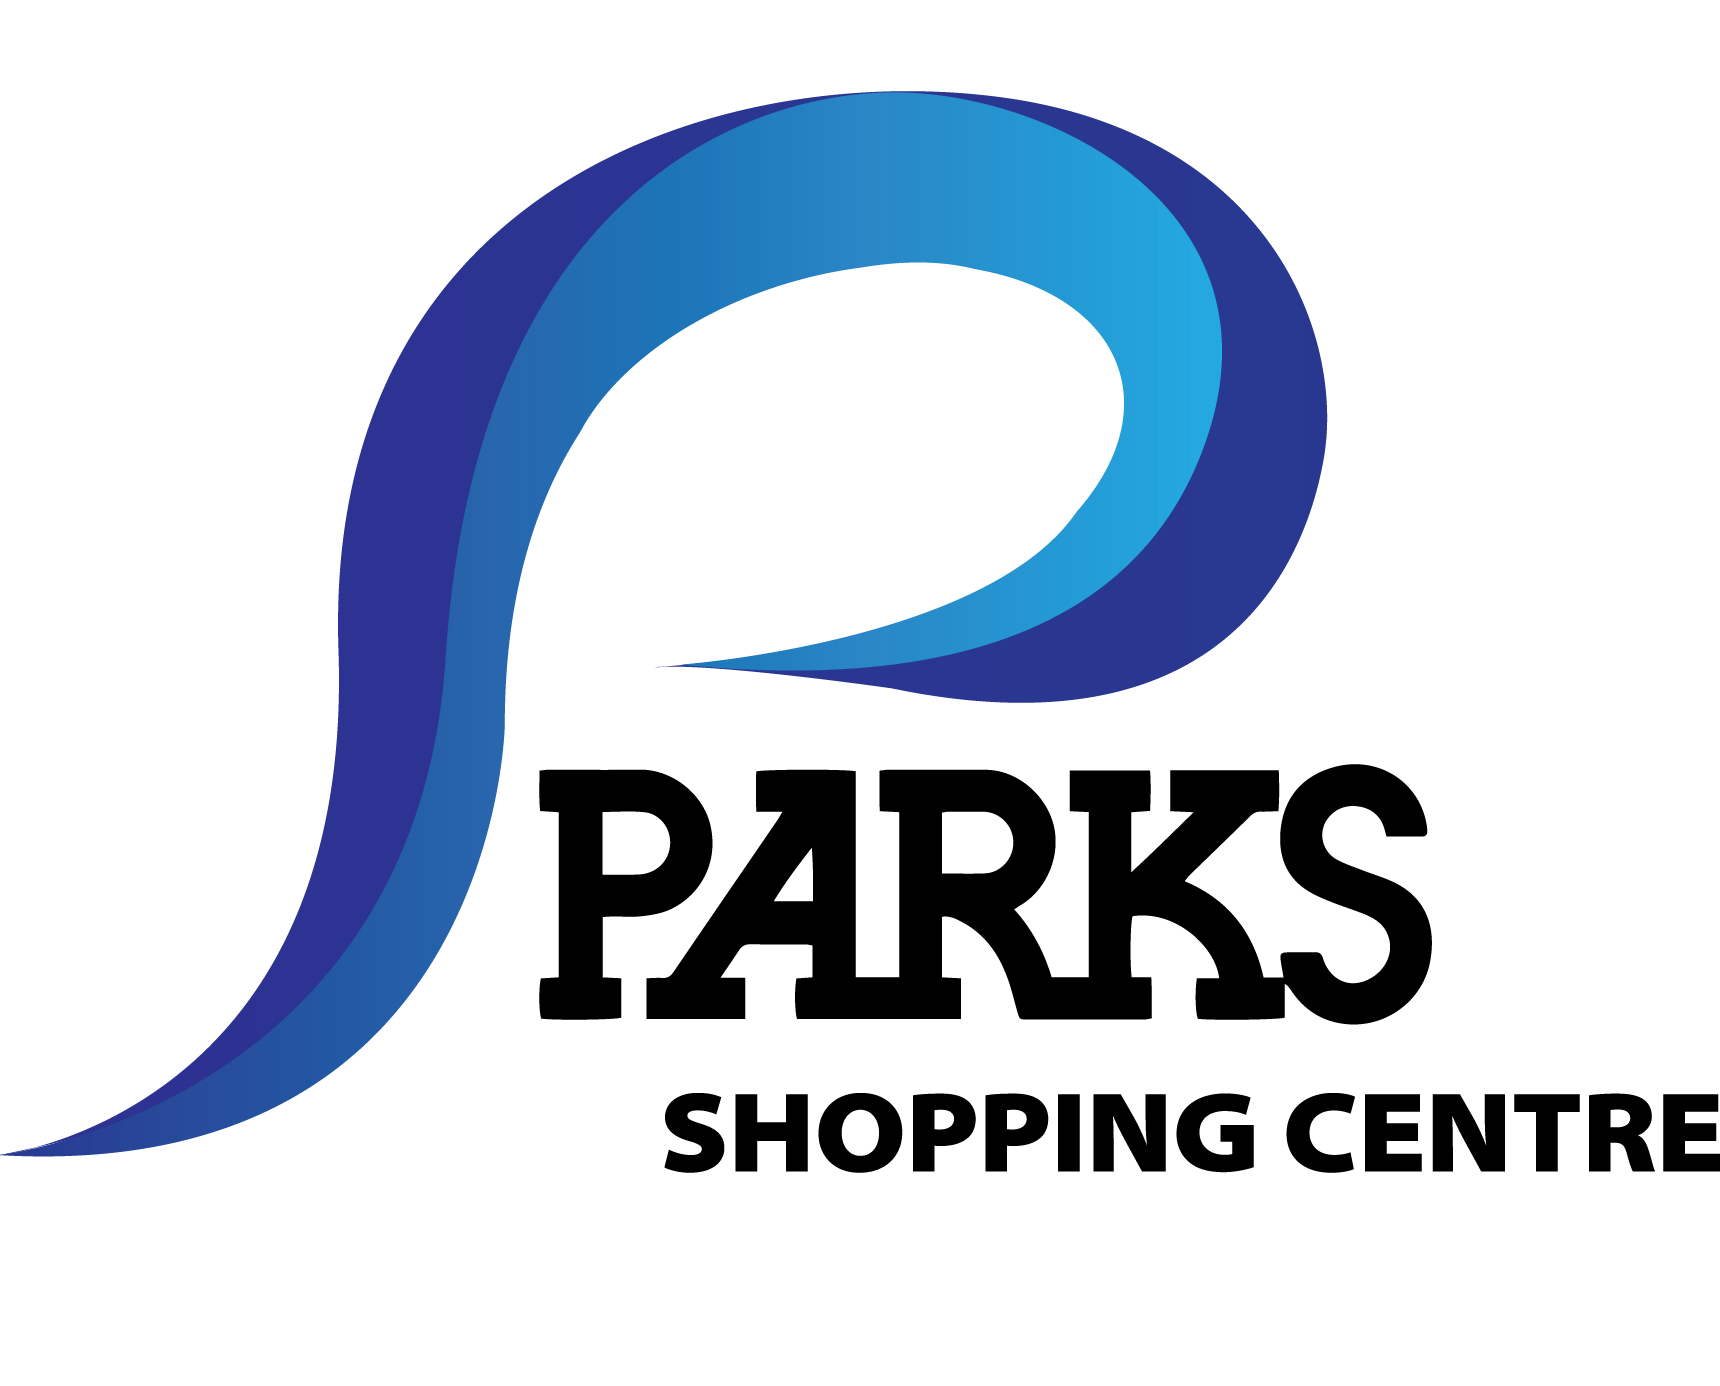 parks-shopping-logo